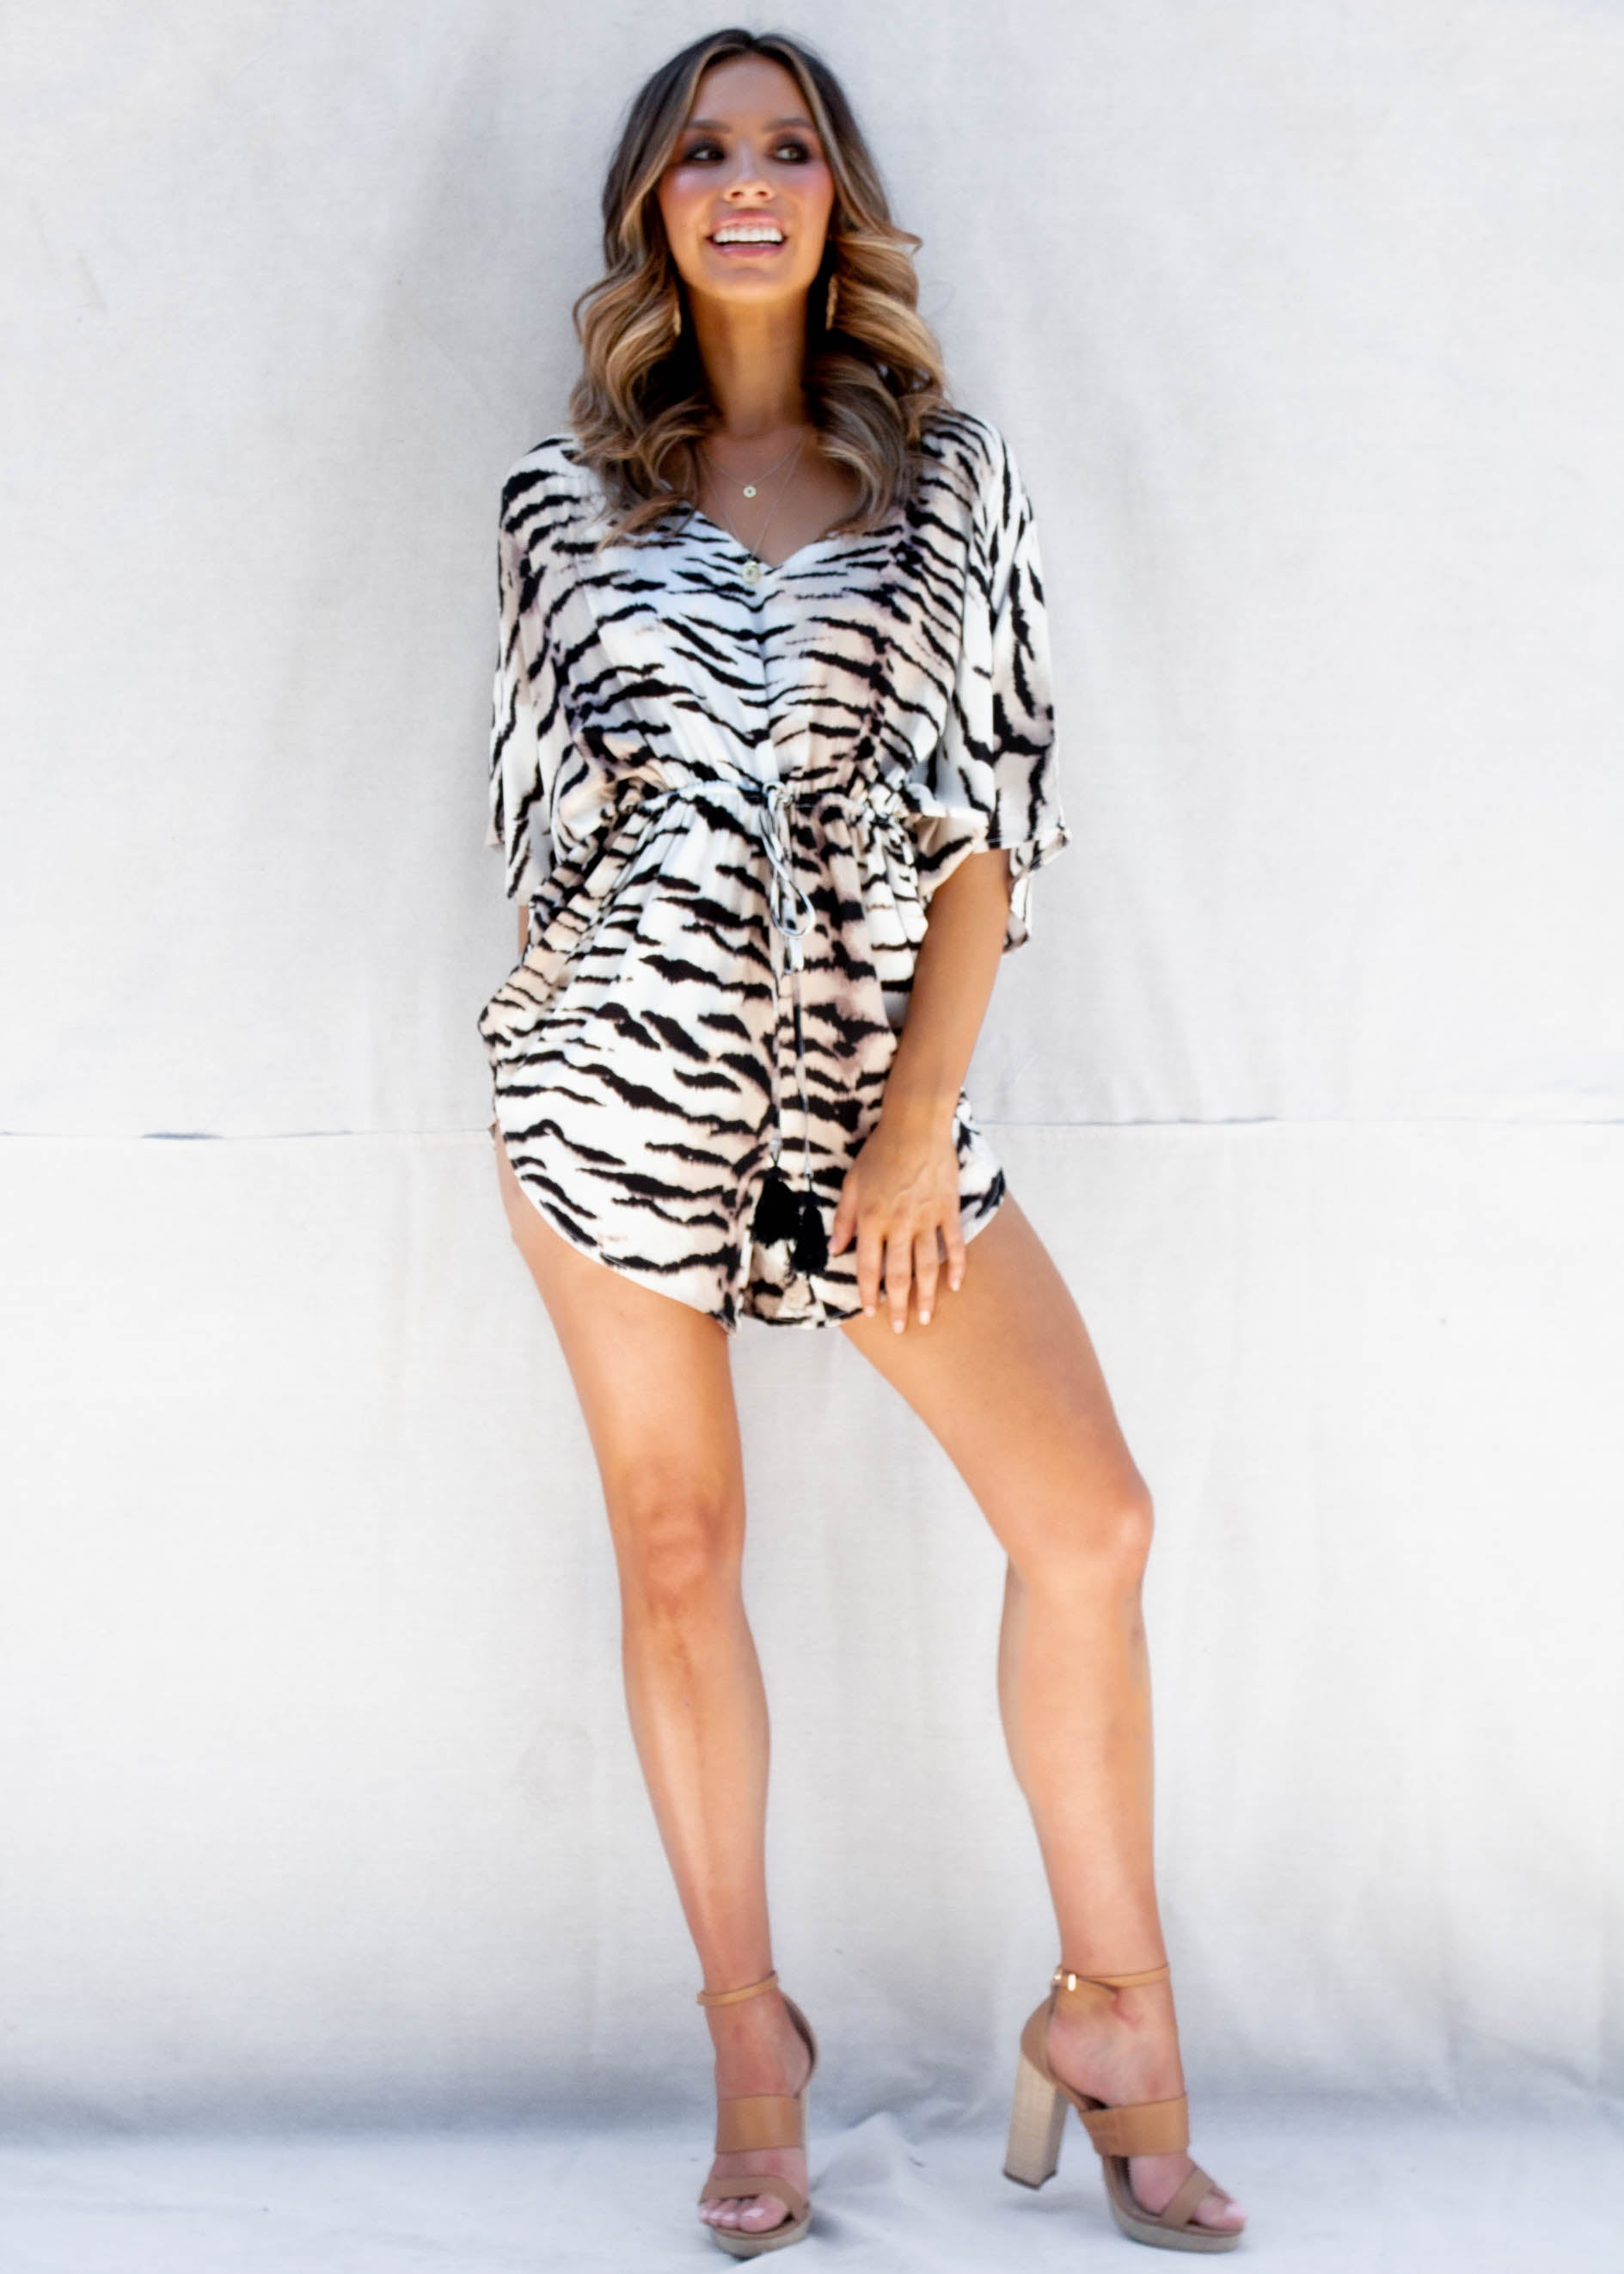 Wild Eyes Playsuit - White Tiger